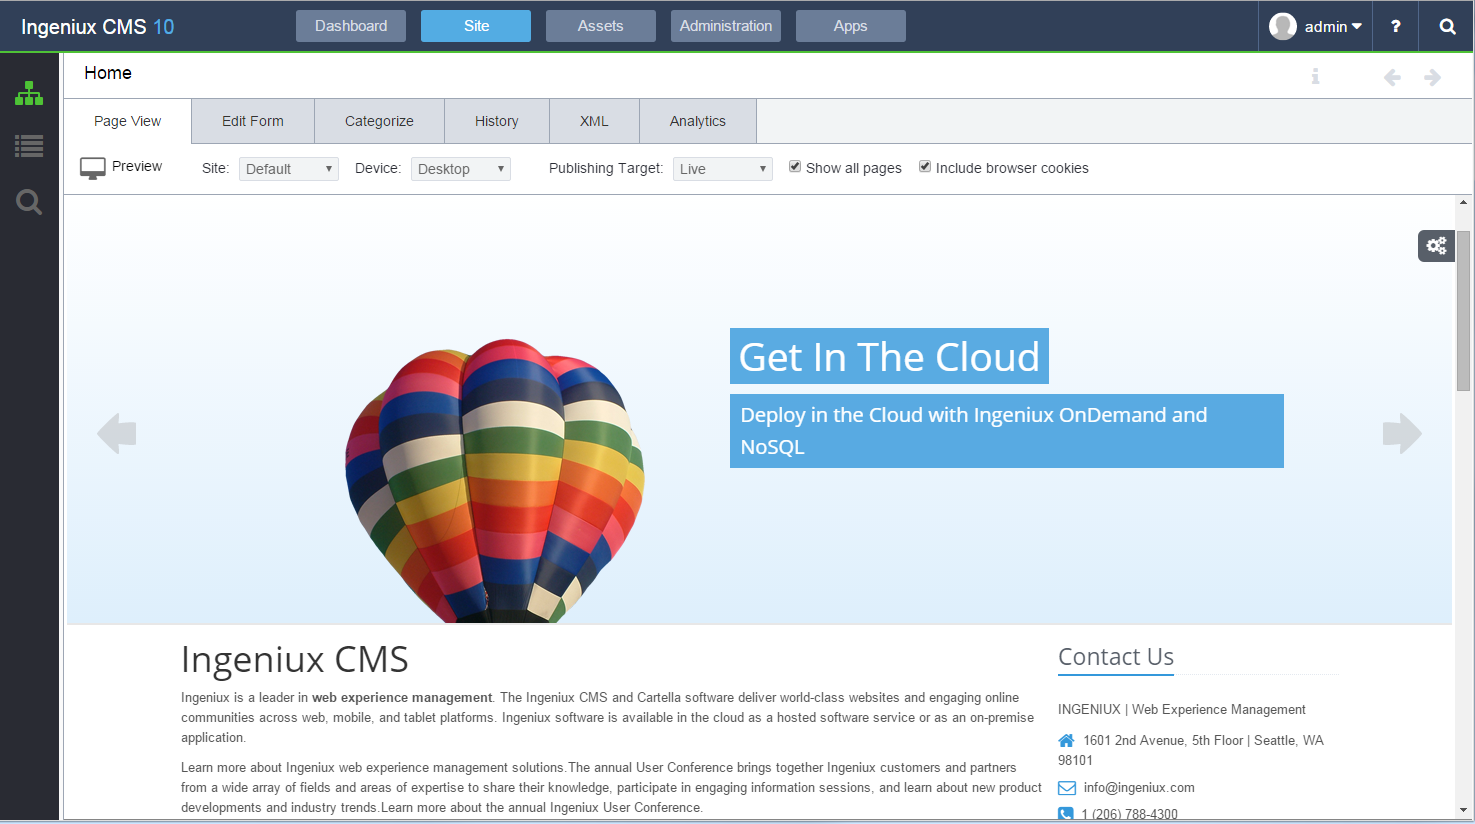 Ingeniux CMS Demo - Ingeniux Page Preview